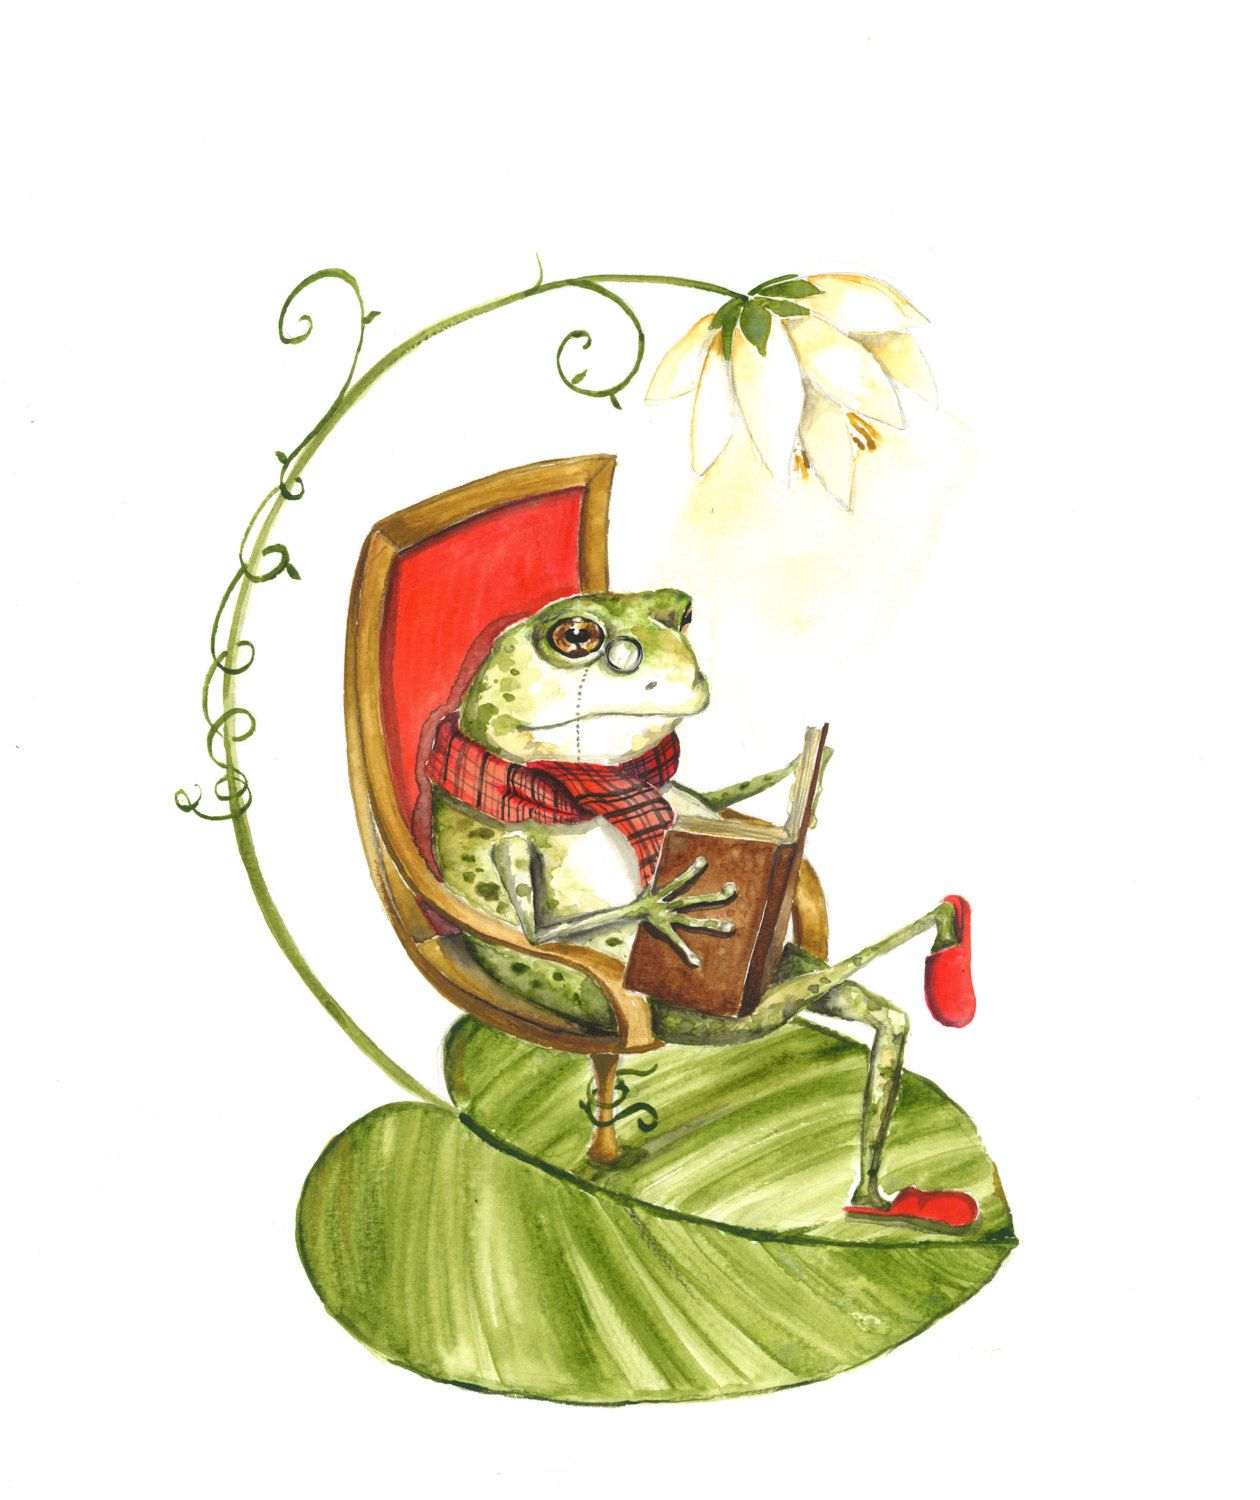 8x10 art print Frog Relaxing in Reading Chair by